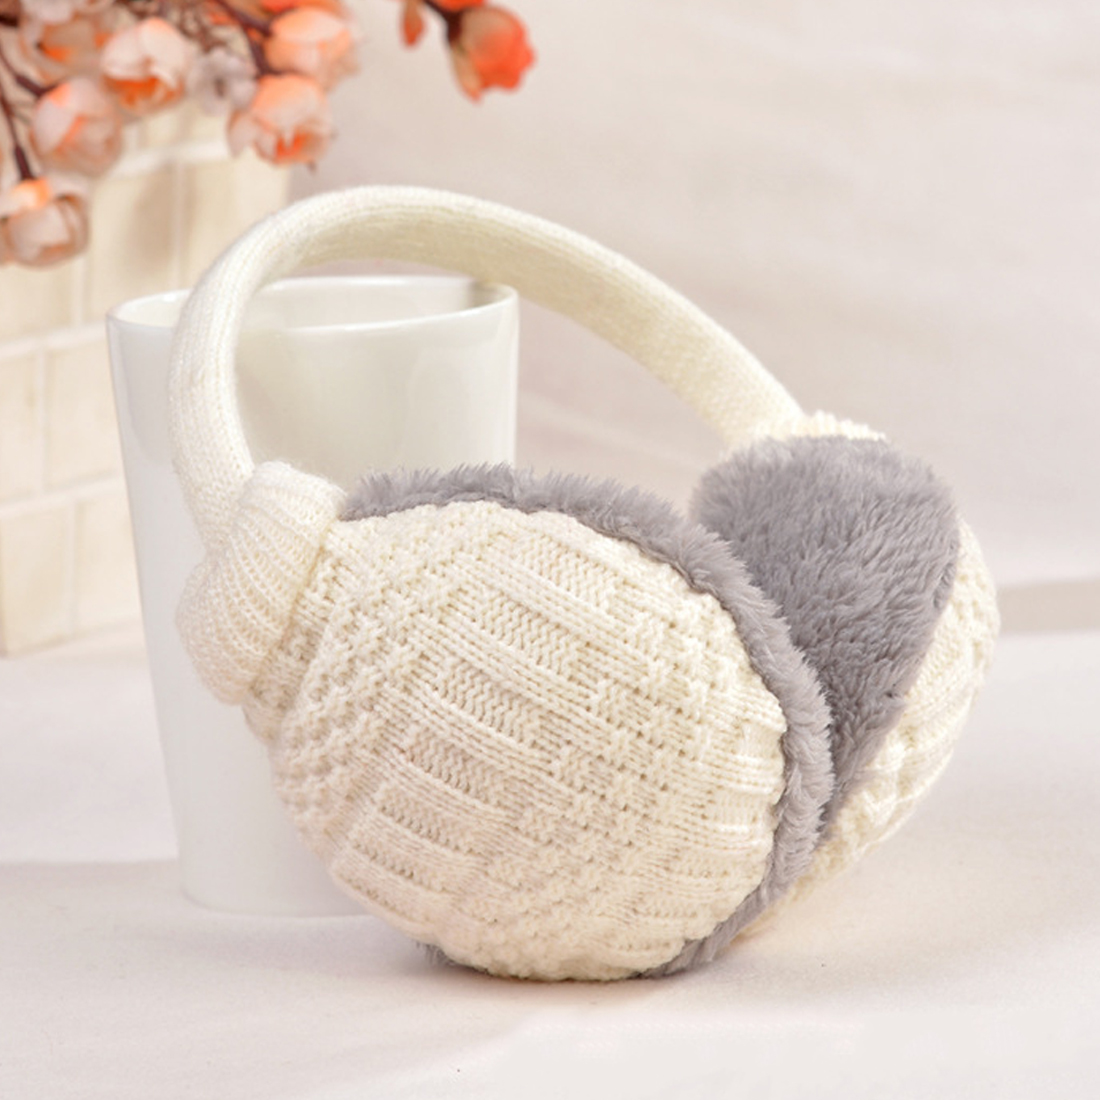 Hot Winter Ear Cover Women Warm Knitted Earmuffs Ear Warmers Women Girls Plush Ear Muffs Earlap Warmer Headband